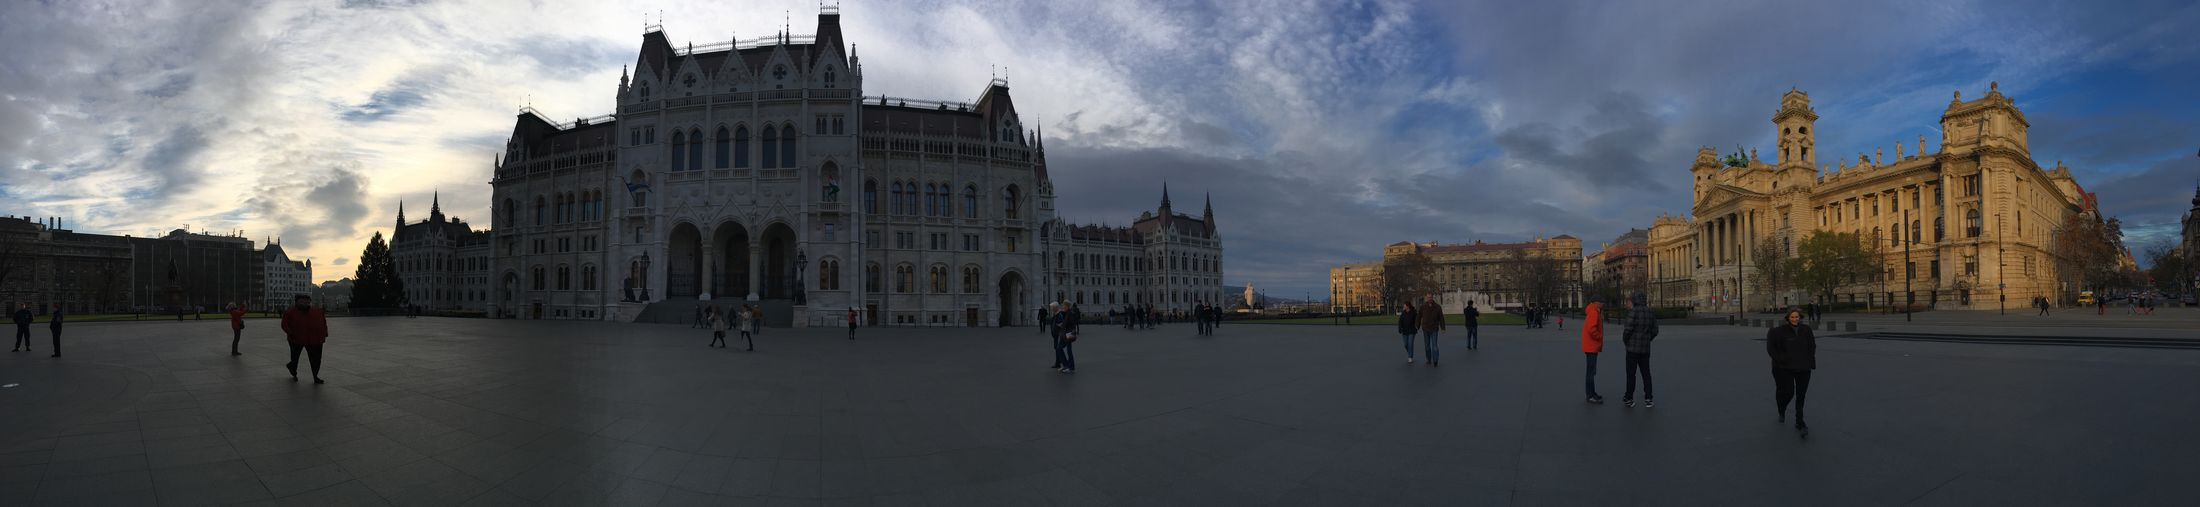 HungarianParliamentBuilding Beautiful View Budapest Enjoying Life IPhoneography Beautiful Day Discoverbudapest